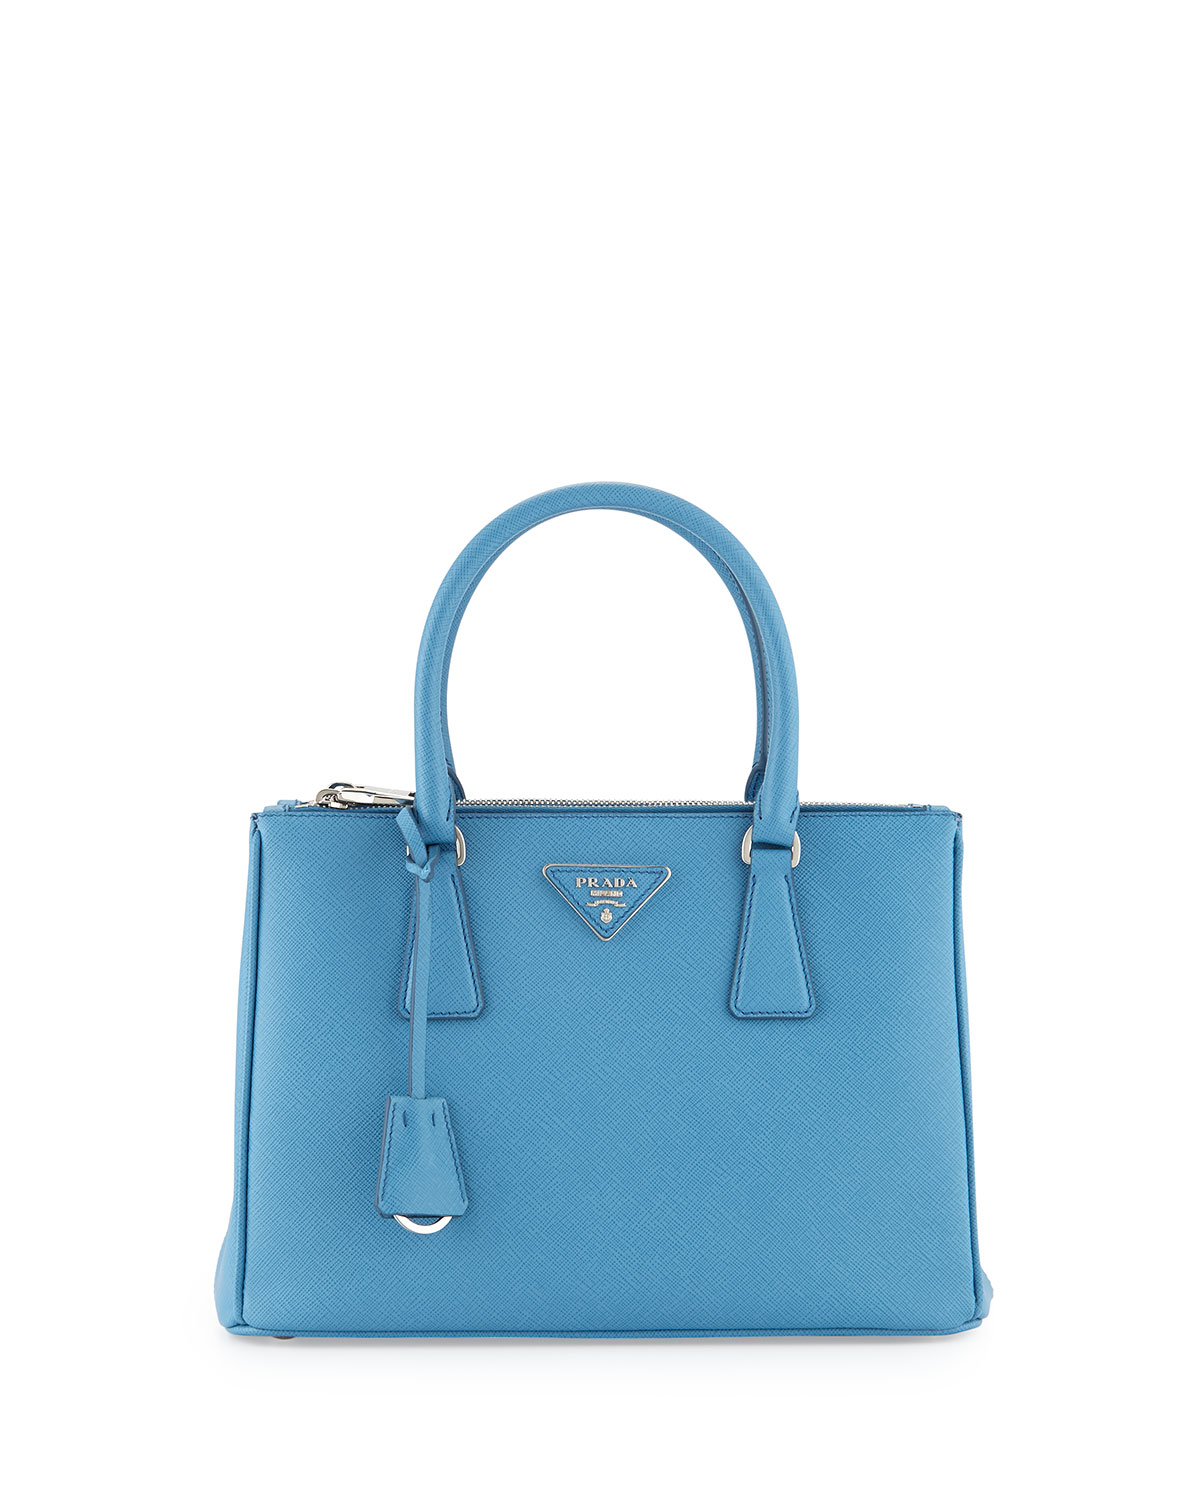 80e61437ab3f Prada Saffiano Lux Small Double-Zip Tote Bag, Light Blue (Mare ...